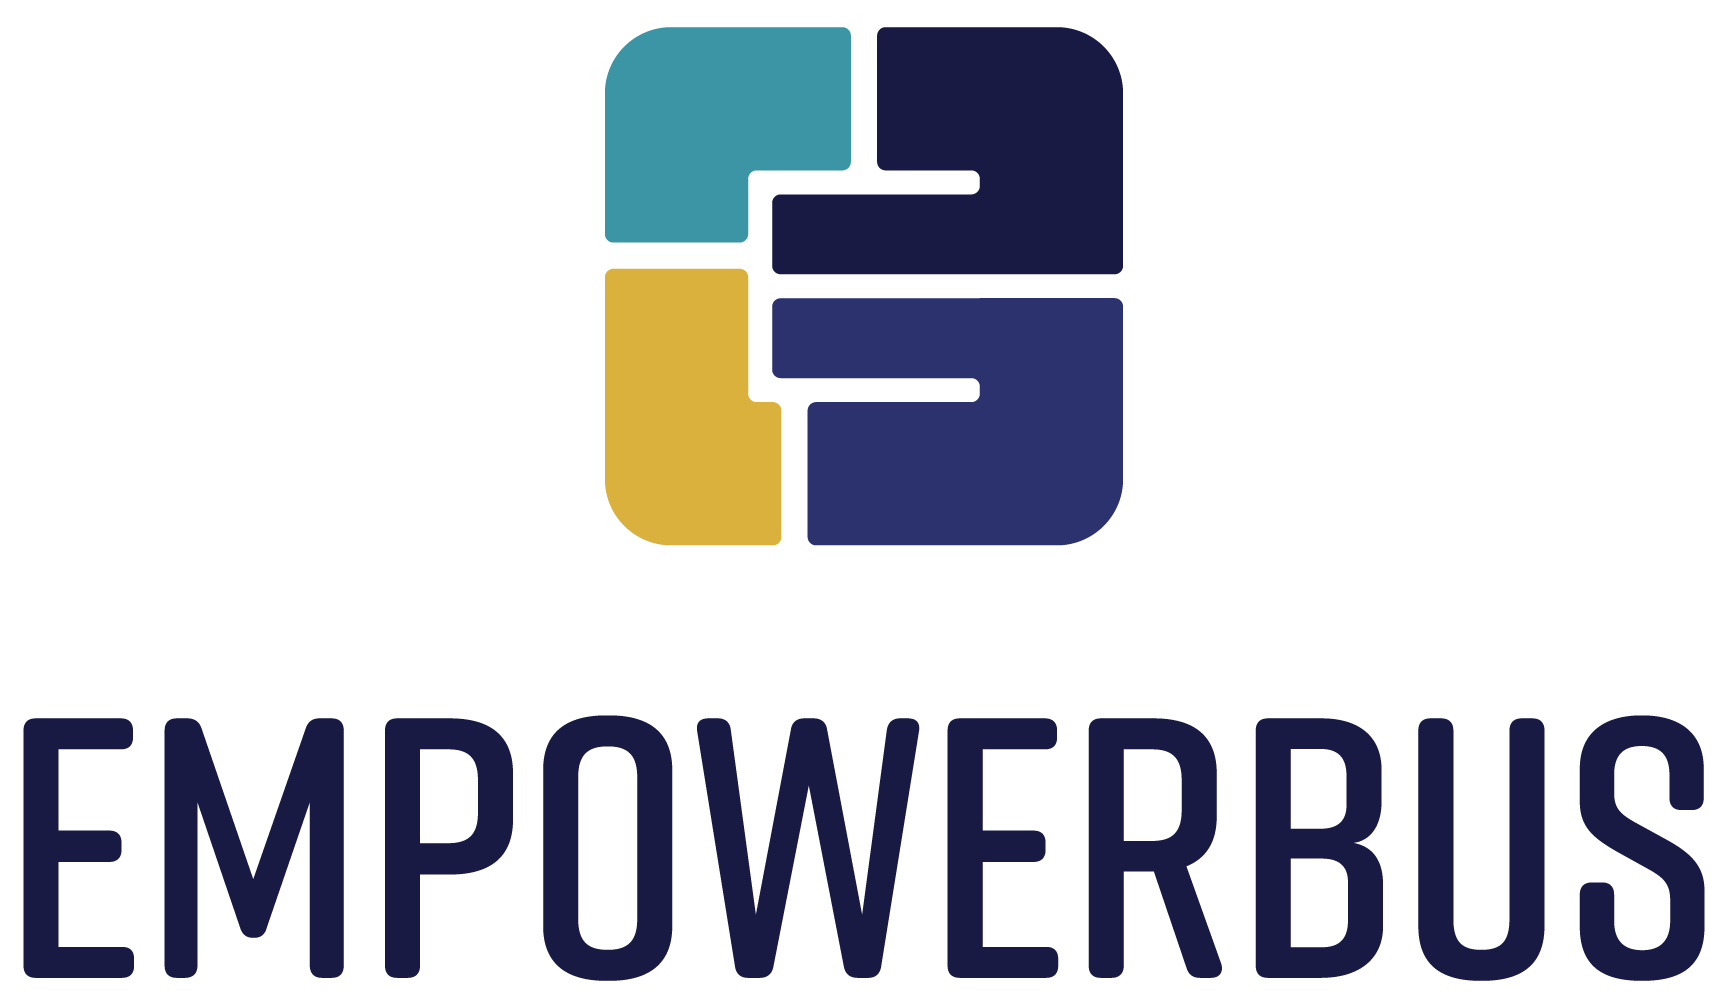 Empowerbus-Secondary-Full-Color.png